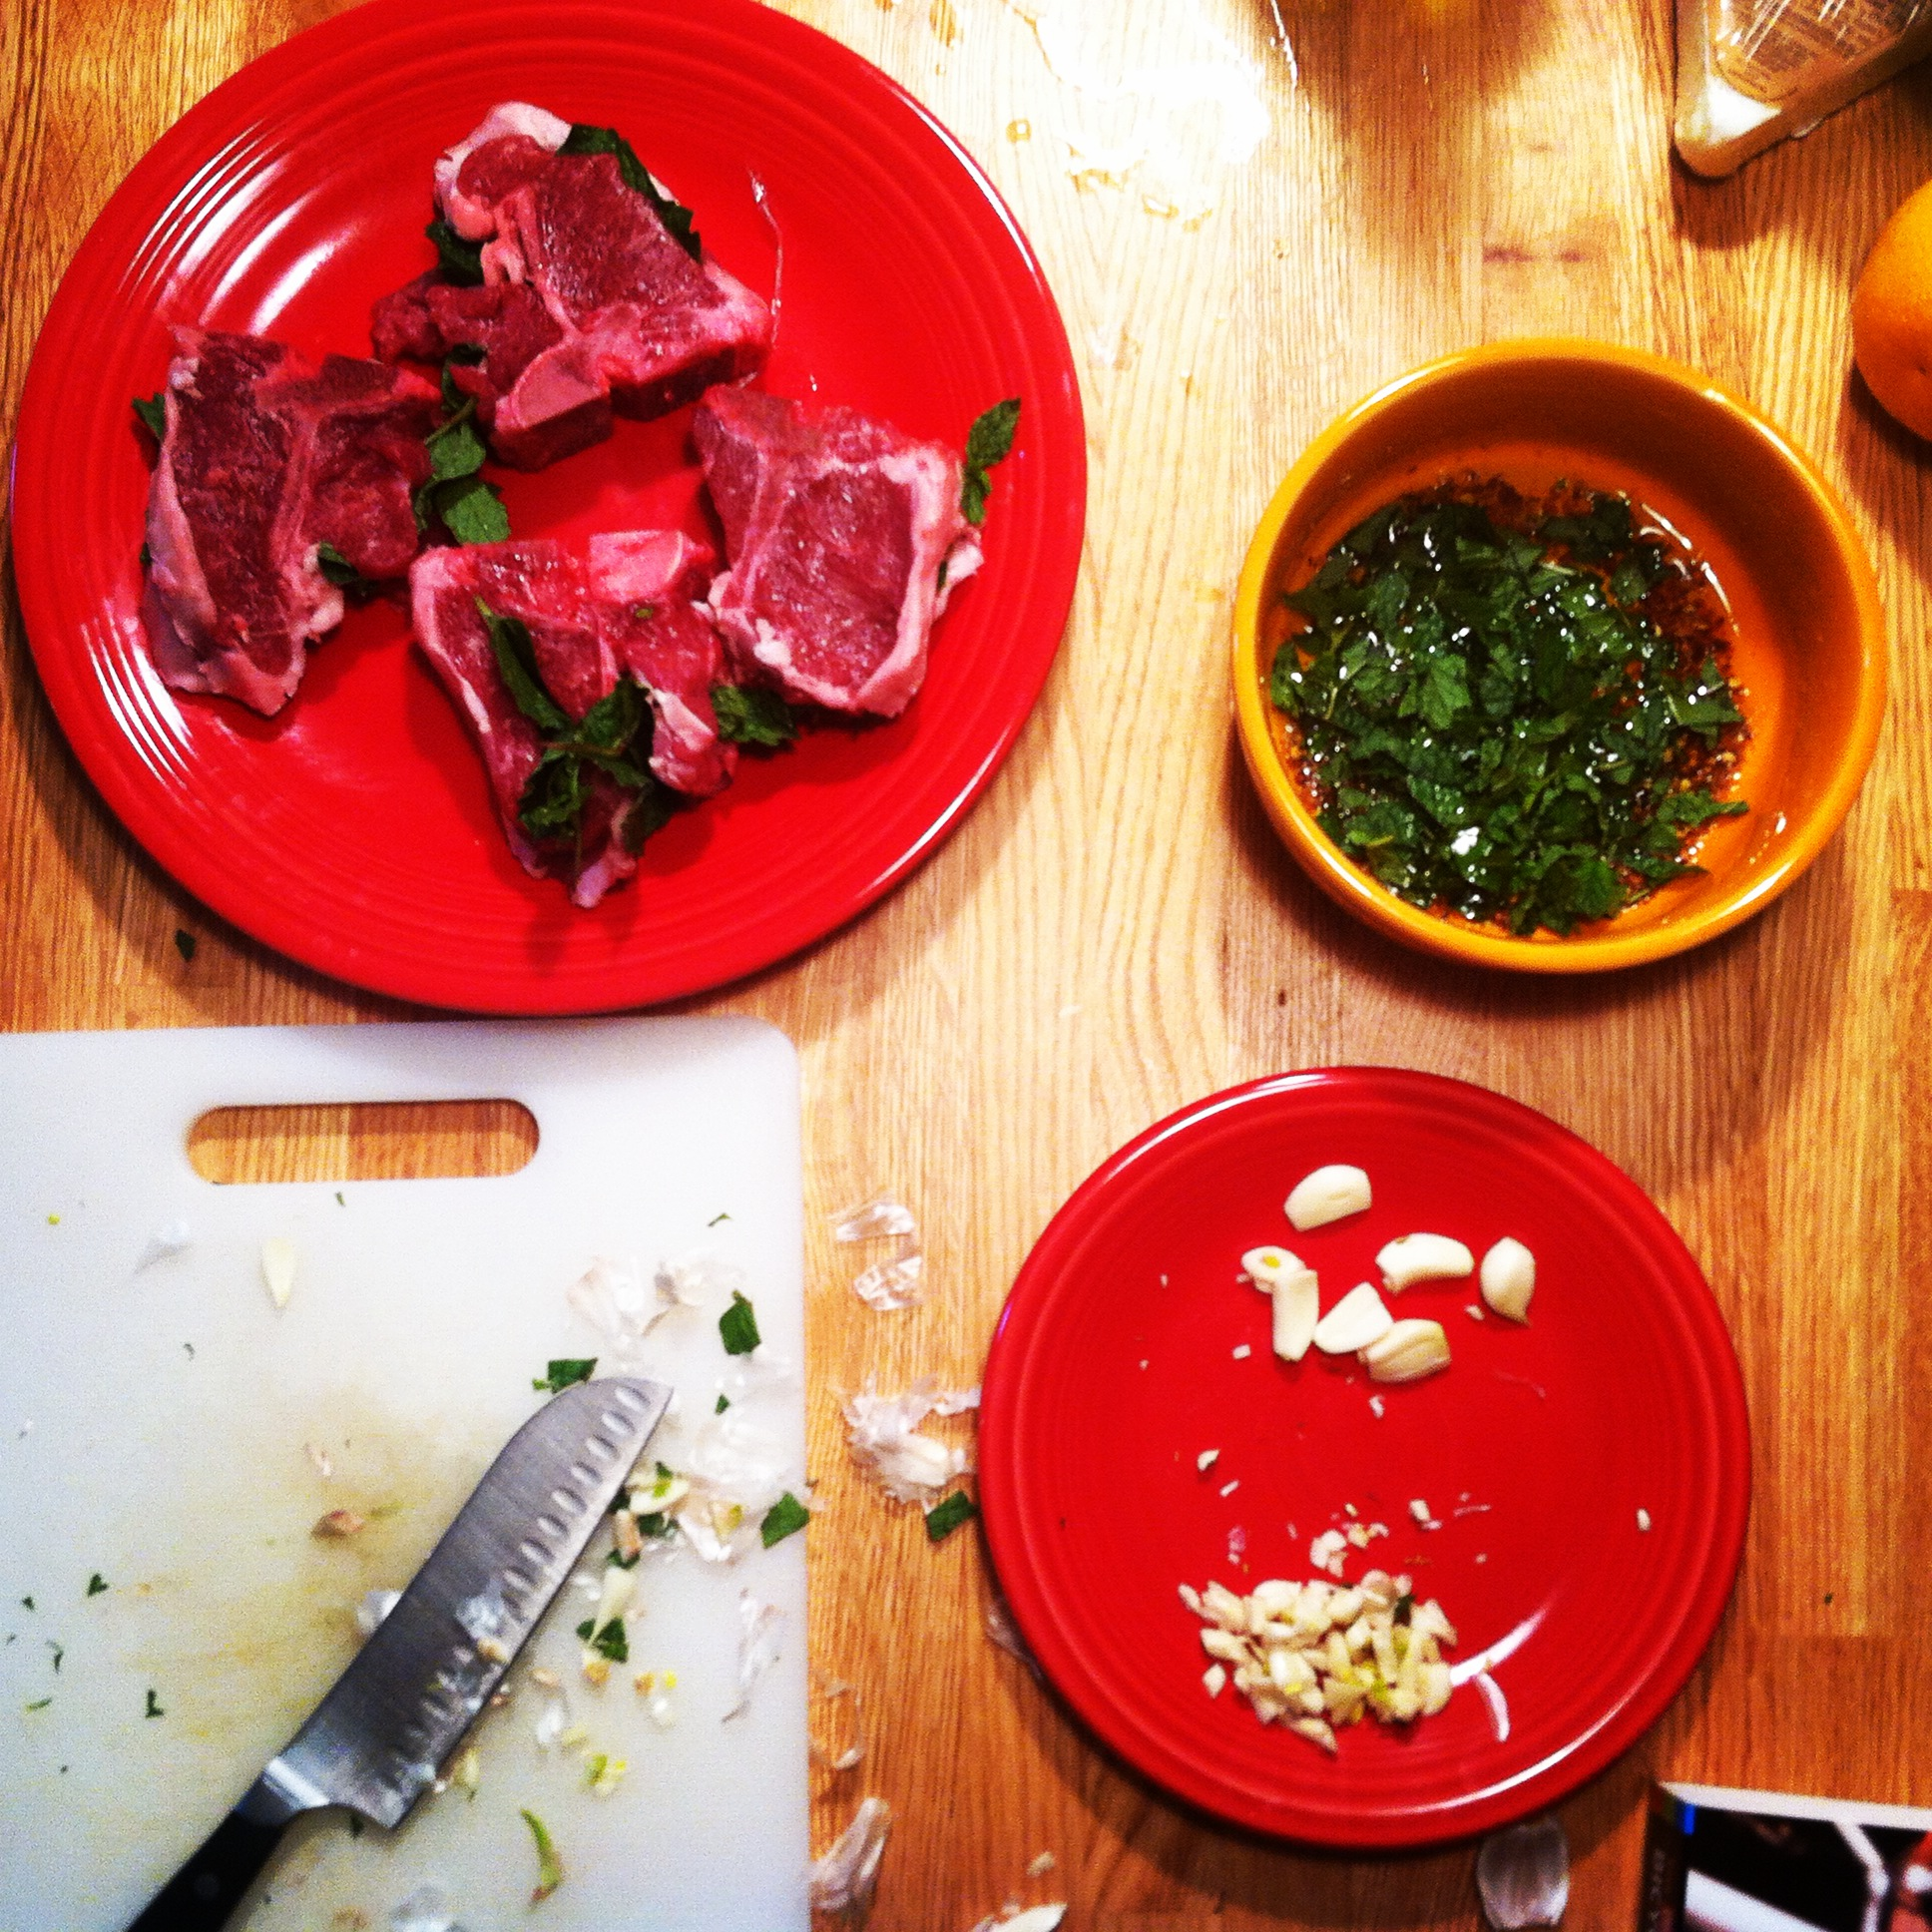 Grilled Mint Lamb and Garlic